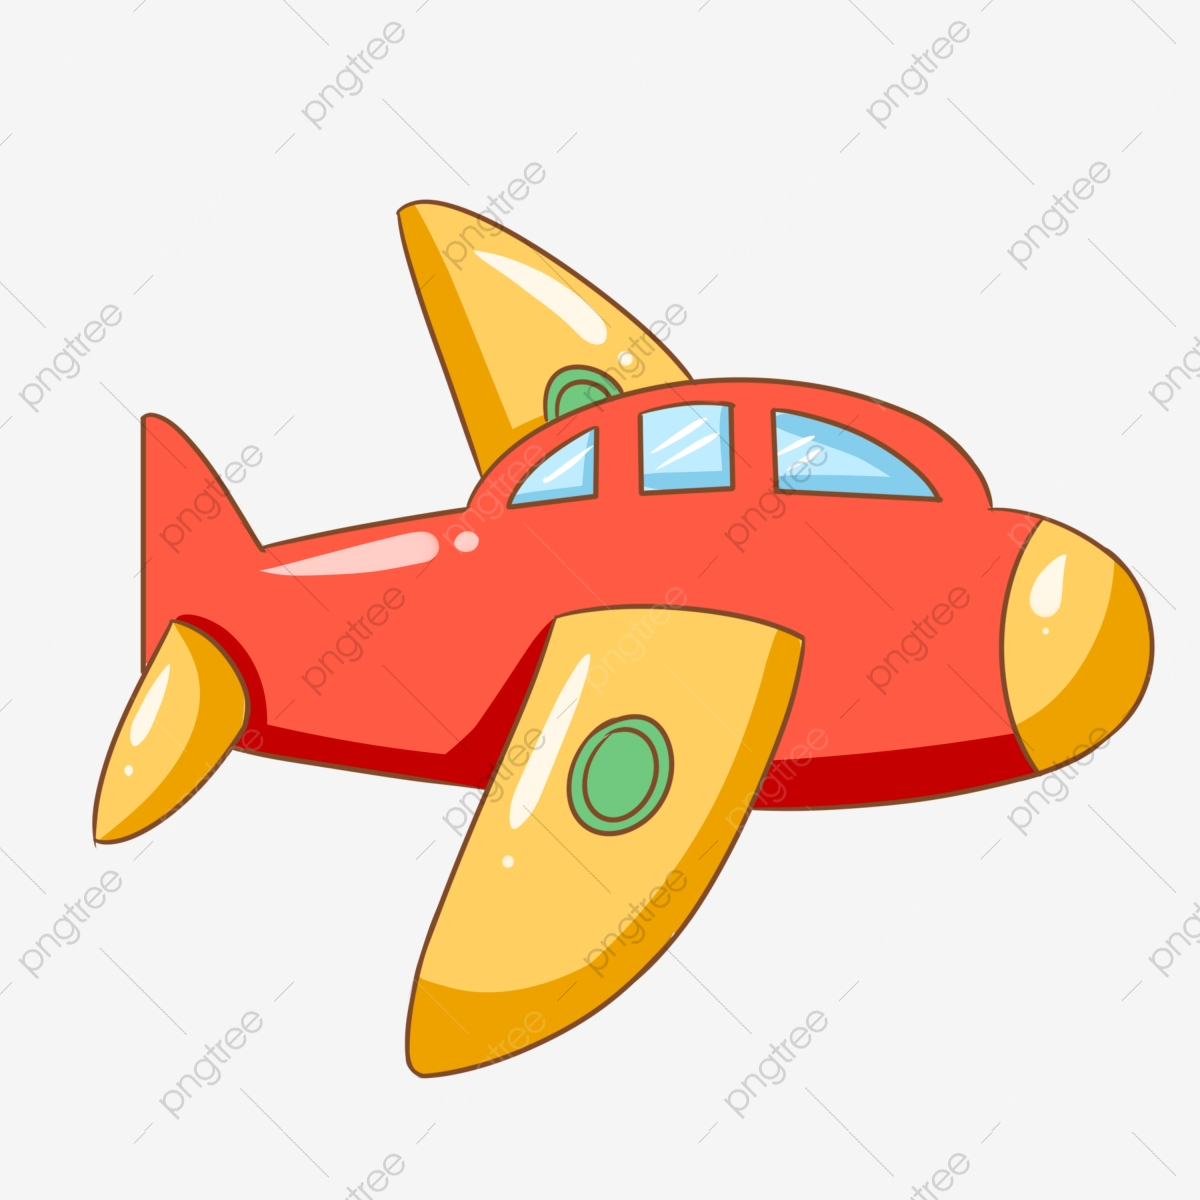 Red Red Plane Small Plane Cartoon Airplane, Airplane.